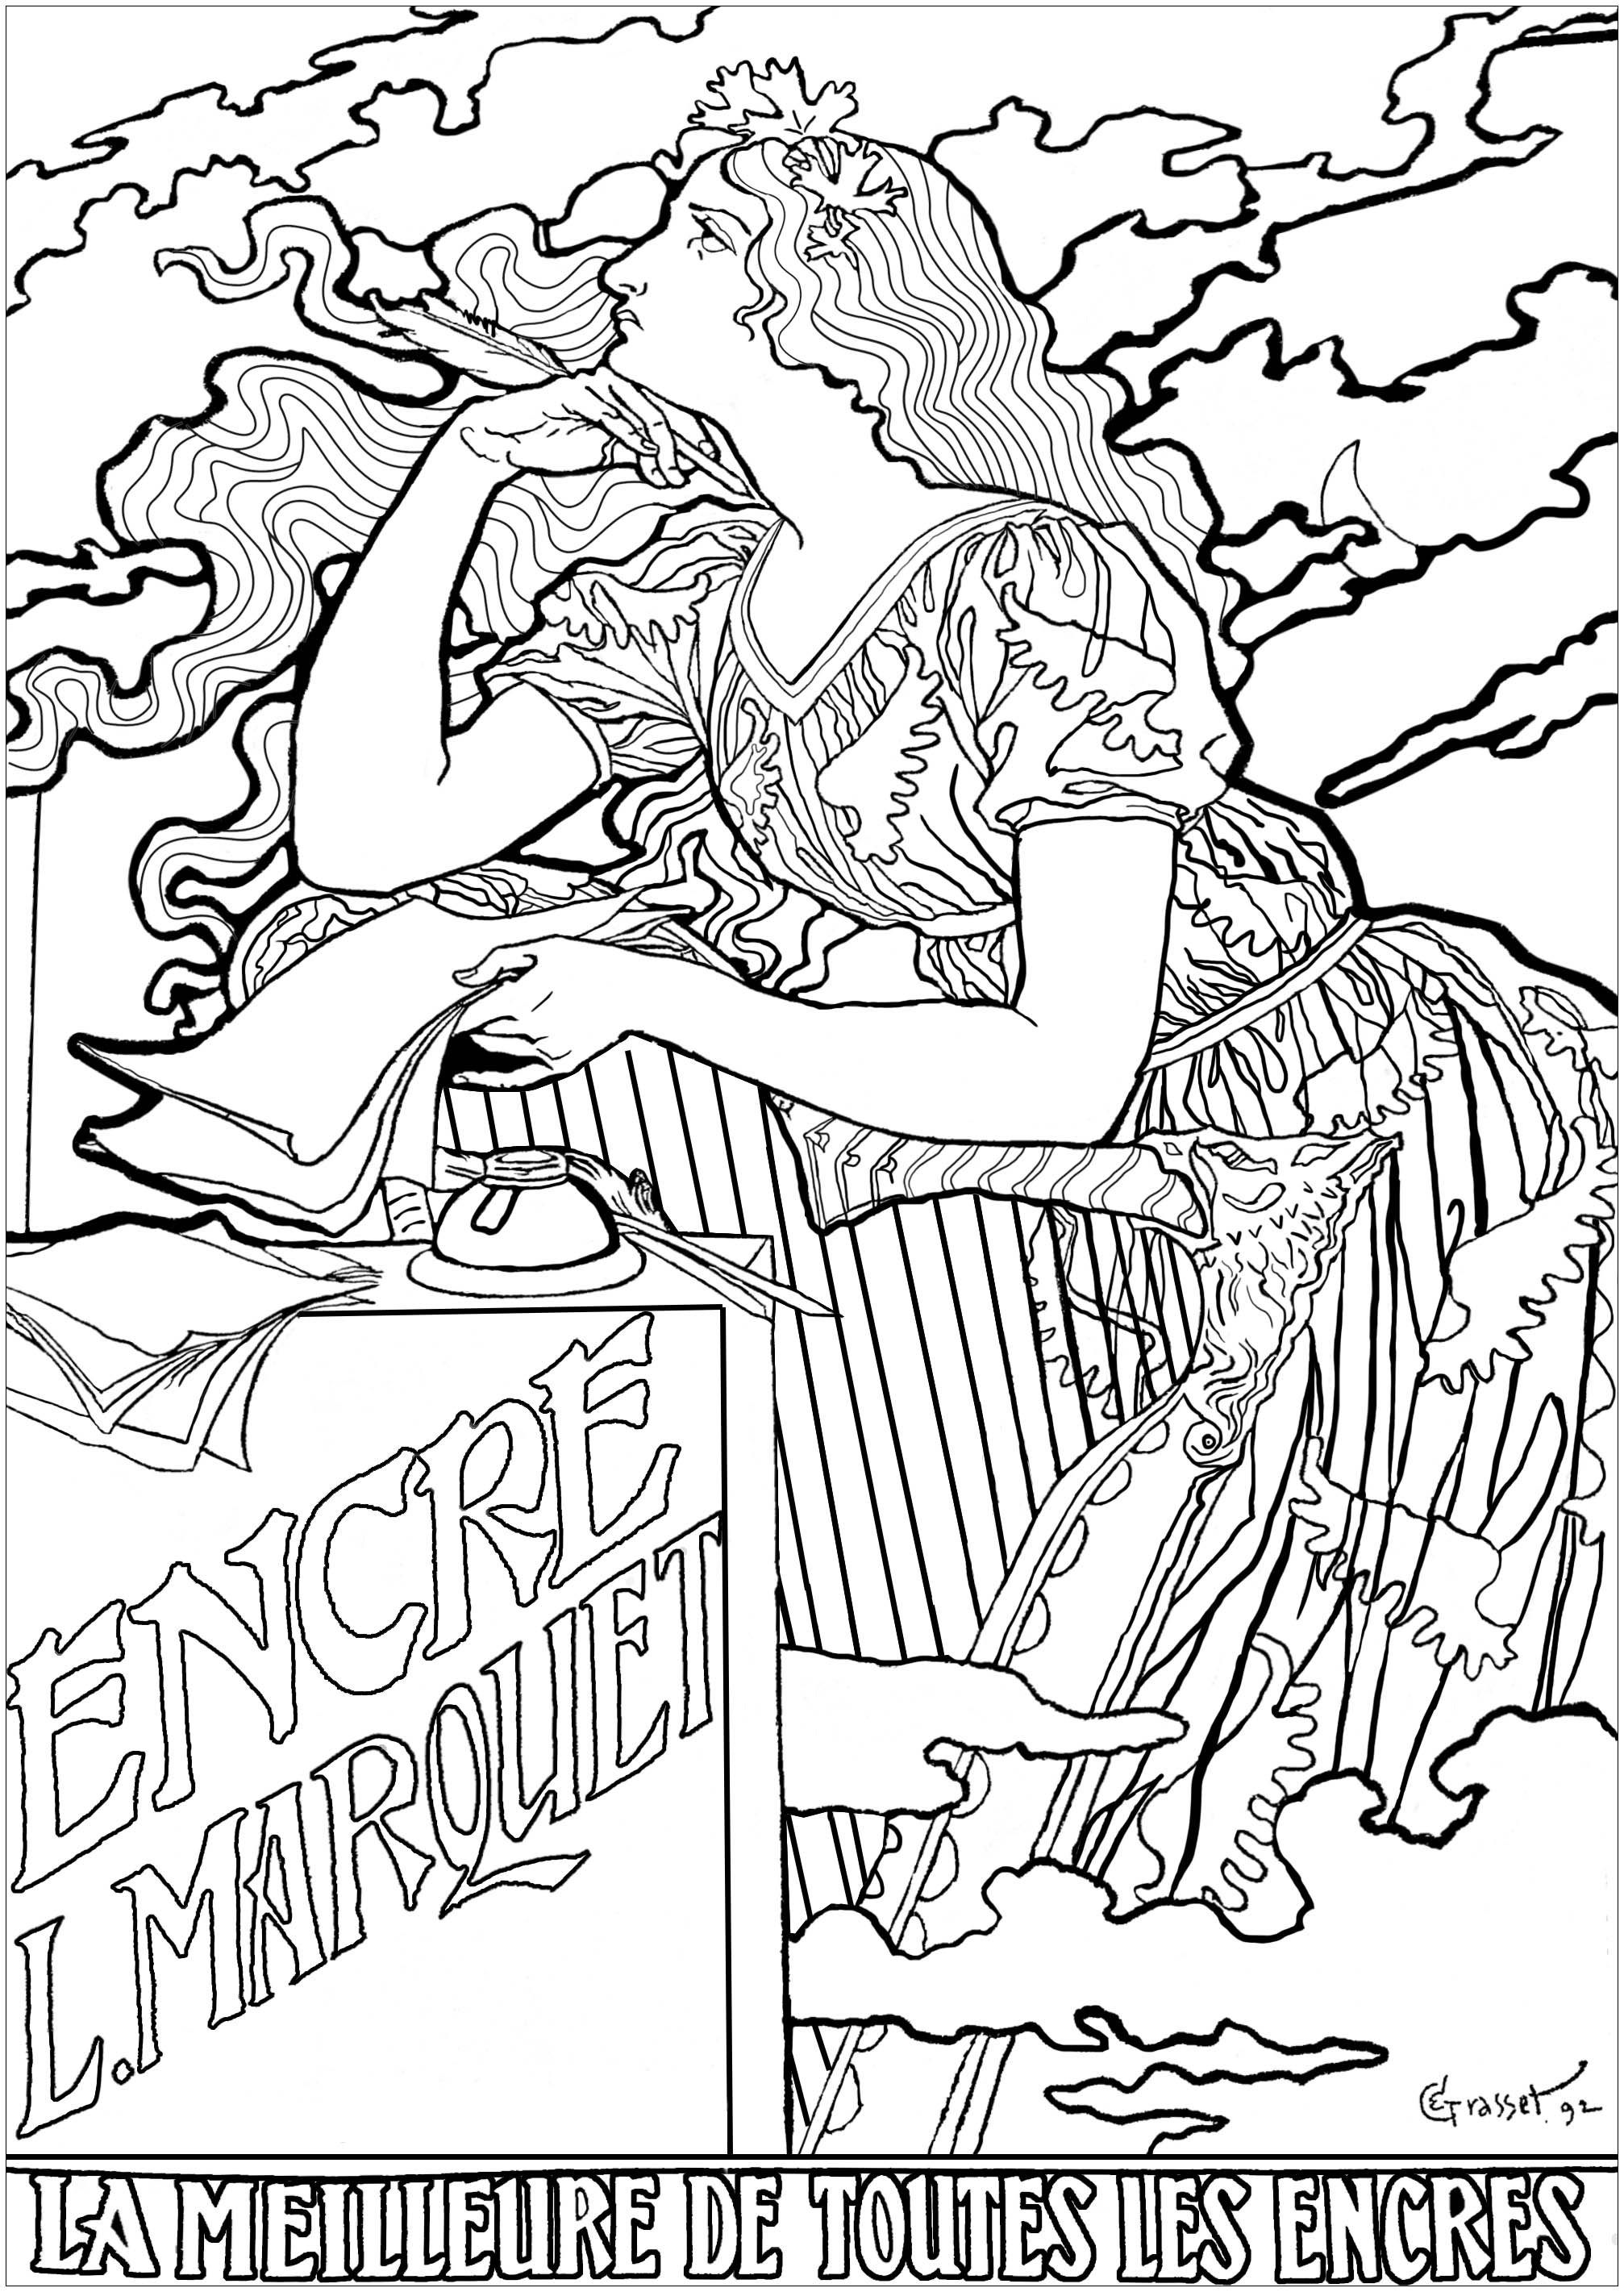 Coloring art nouveau ad for ink